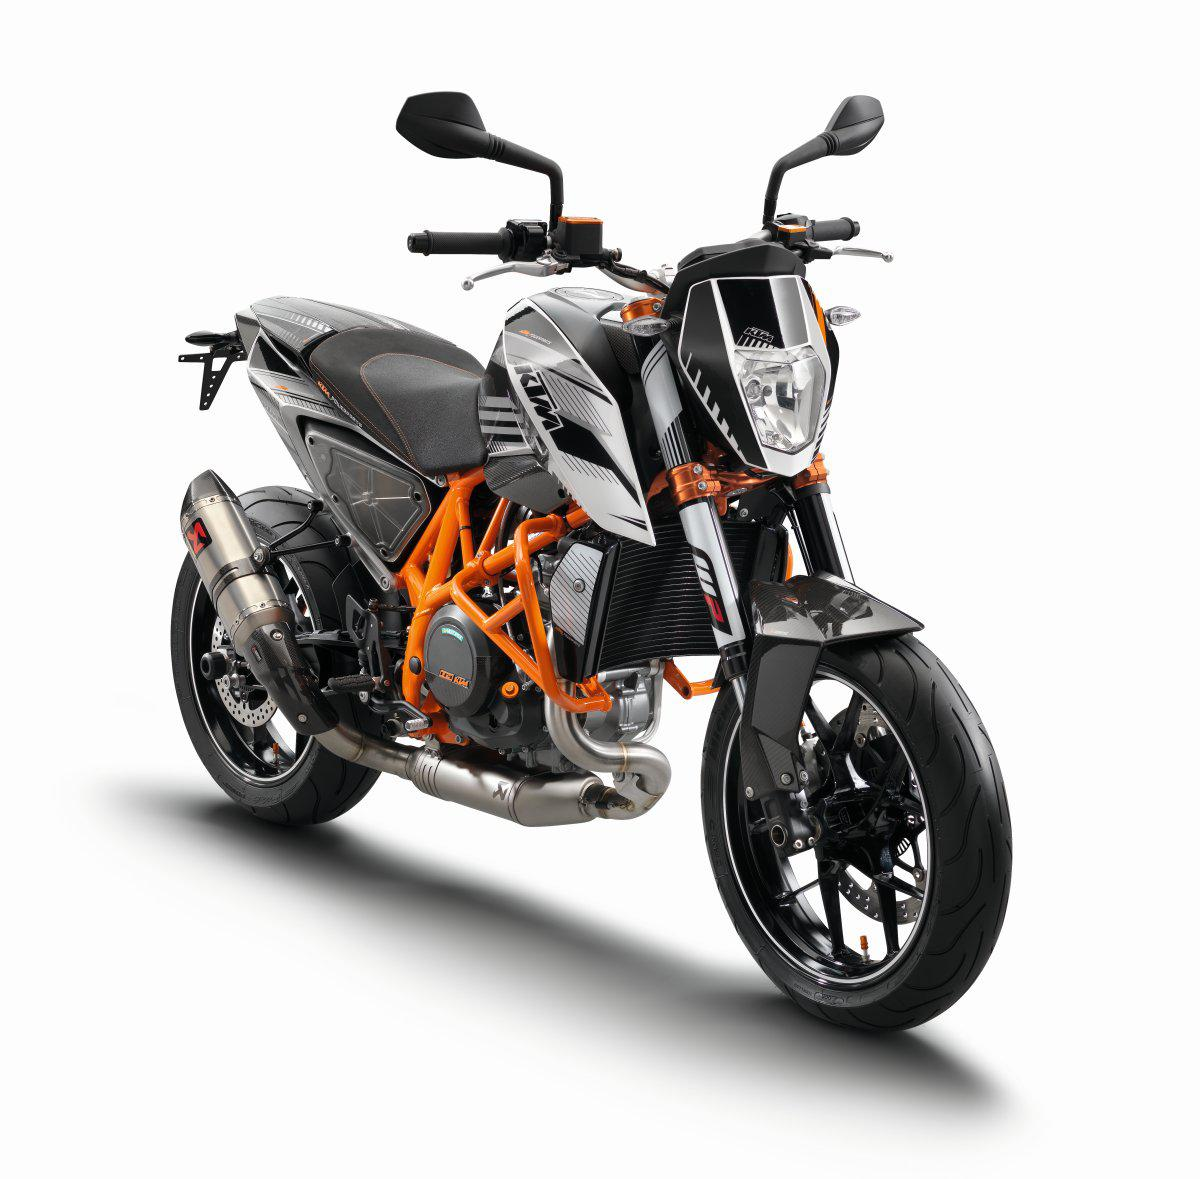 ktm test einzylinder 690 duke enduro r smc r motorrad fotos motorrad bilder. Black Bedroom Furniture Sets. Home Design Ideas